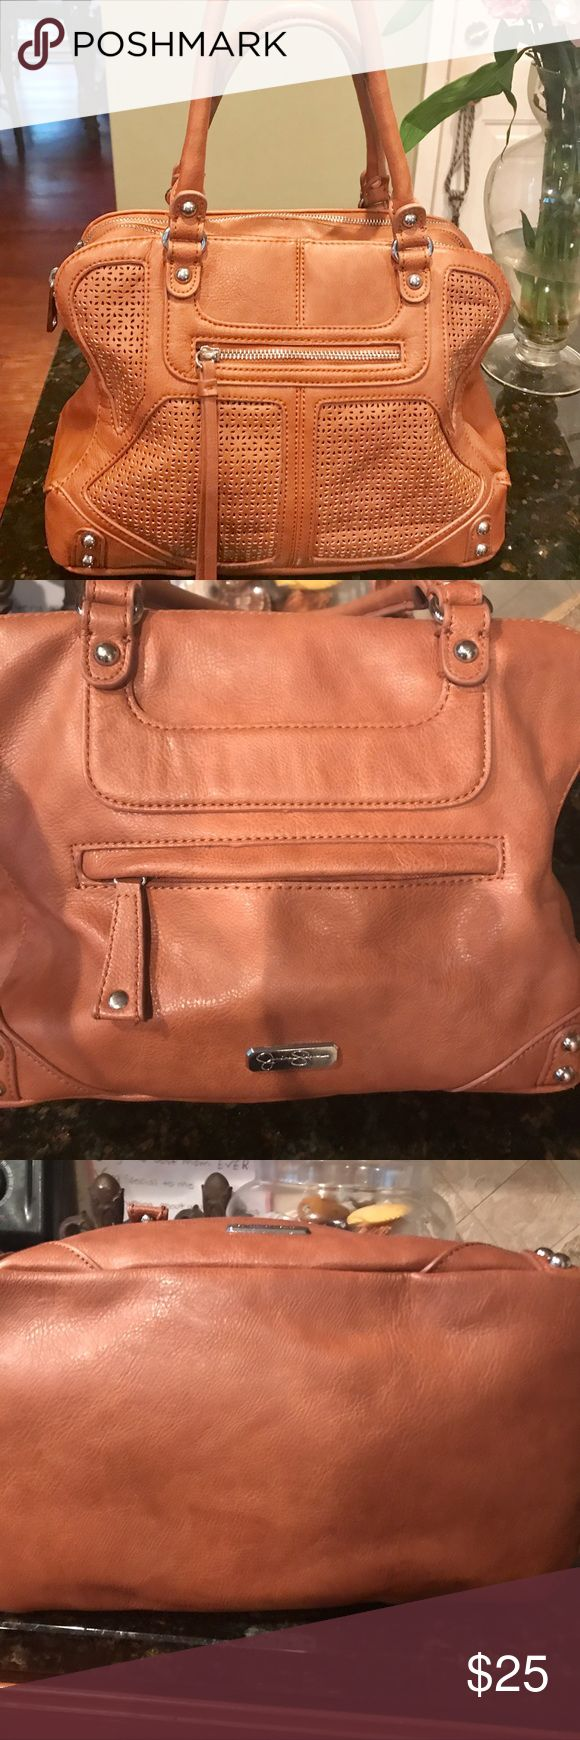 """Jessica Simpson purse LOTS of room! Great Neutral color Jessica Simpson purse with lots of room for all your needs. 3 separate zip compartments and 2 outside zip compartments. I got plenty of use out of this and it's still in great shape for you to also! Nice sturdy purse that stands up on its own. I ship within  24 hours👜 Great Used Condition. No marks or stains. I just feel like it lost some of its shape. Once it's filled with your essentials, it'll be nice and full;) 12""""width x 9""""height…"""